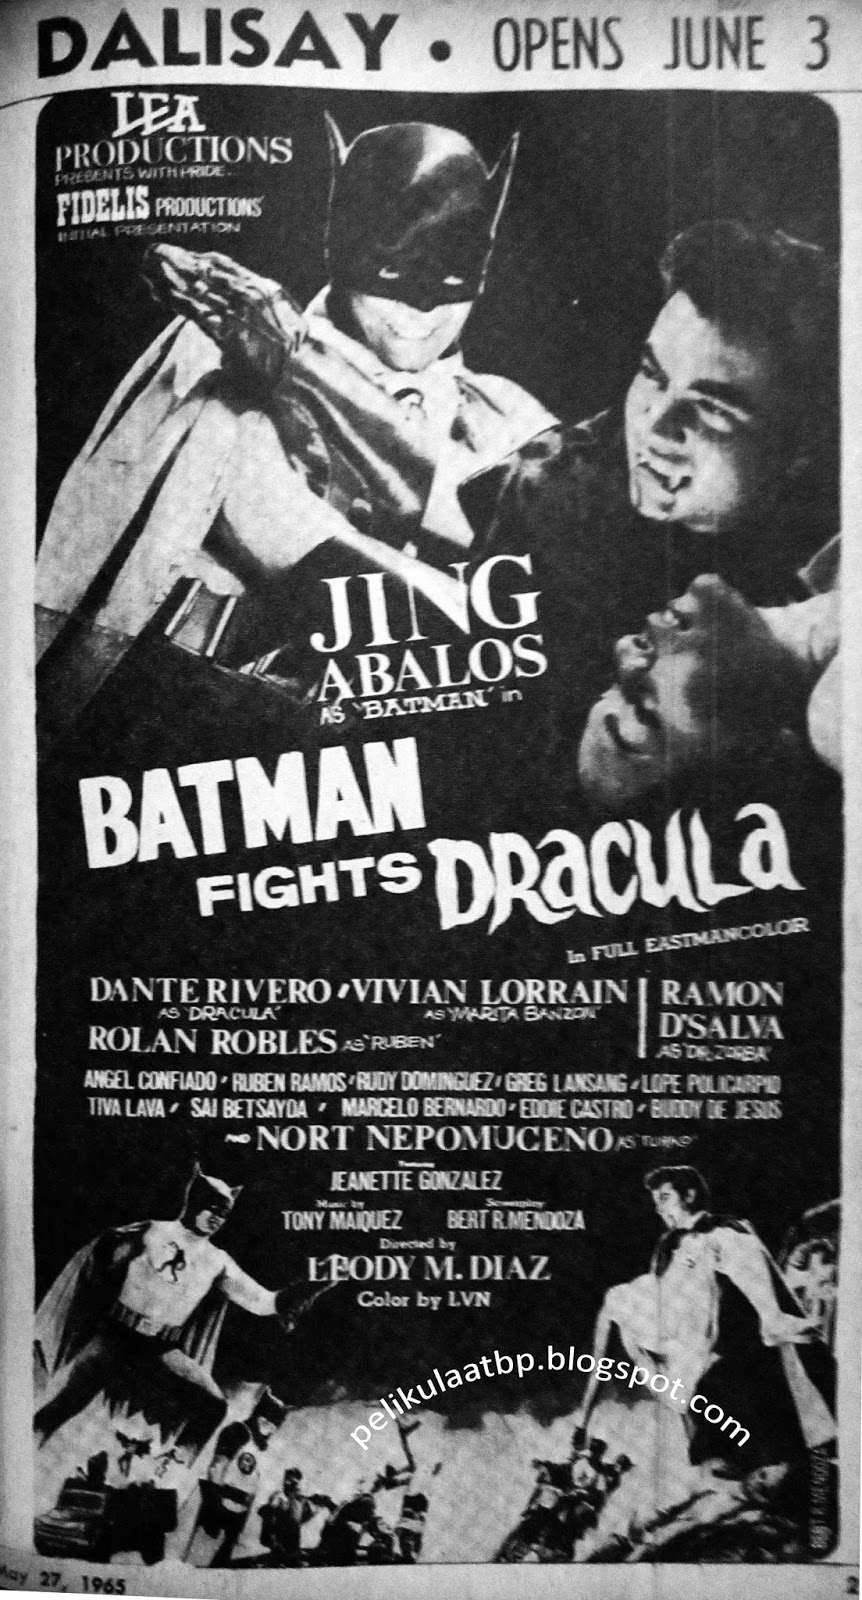 Batman Fights Dracula (Release Date - June 3, 1965)